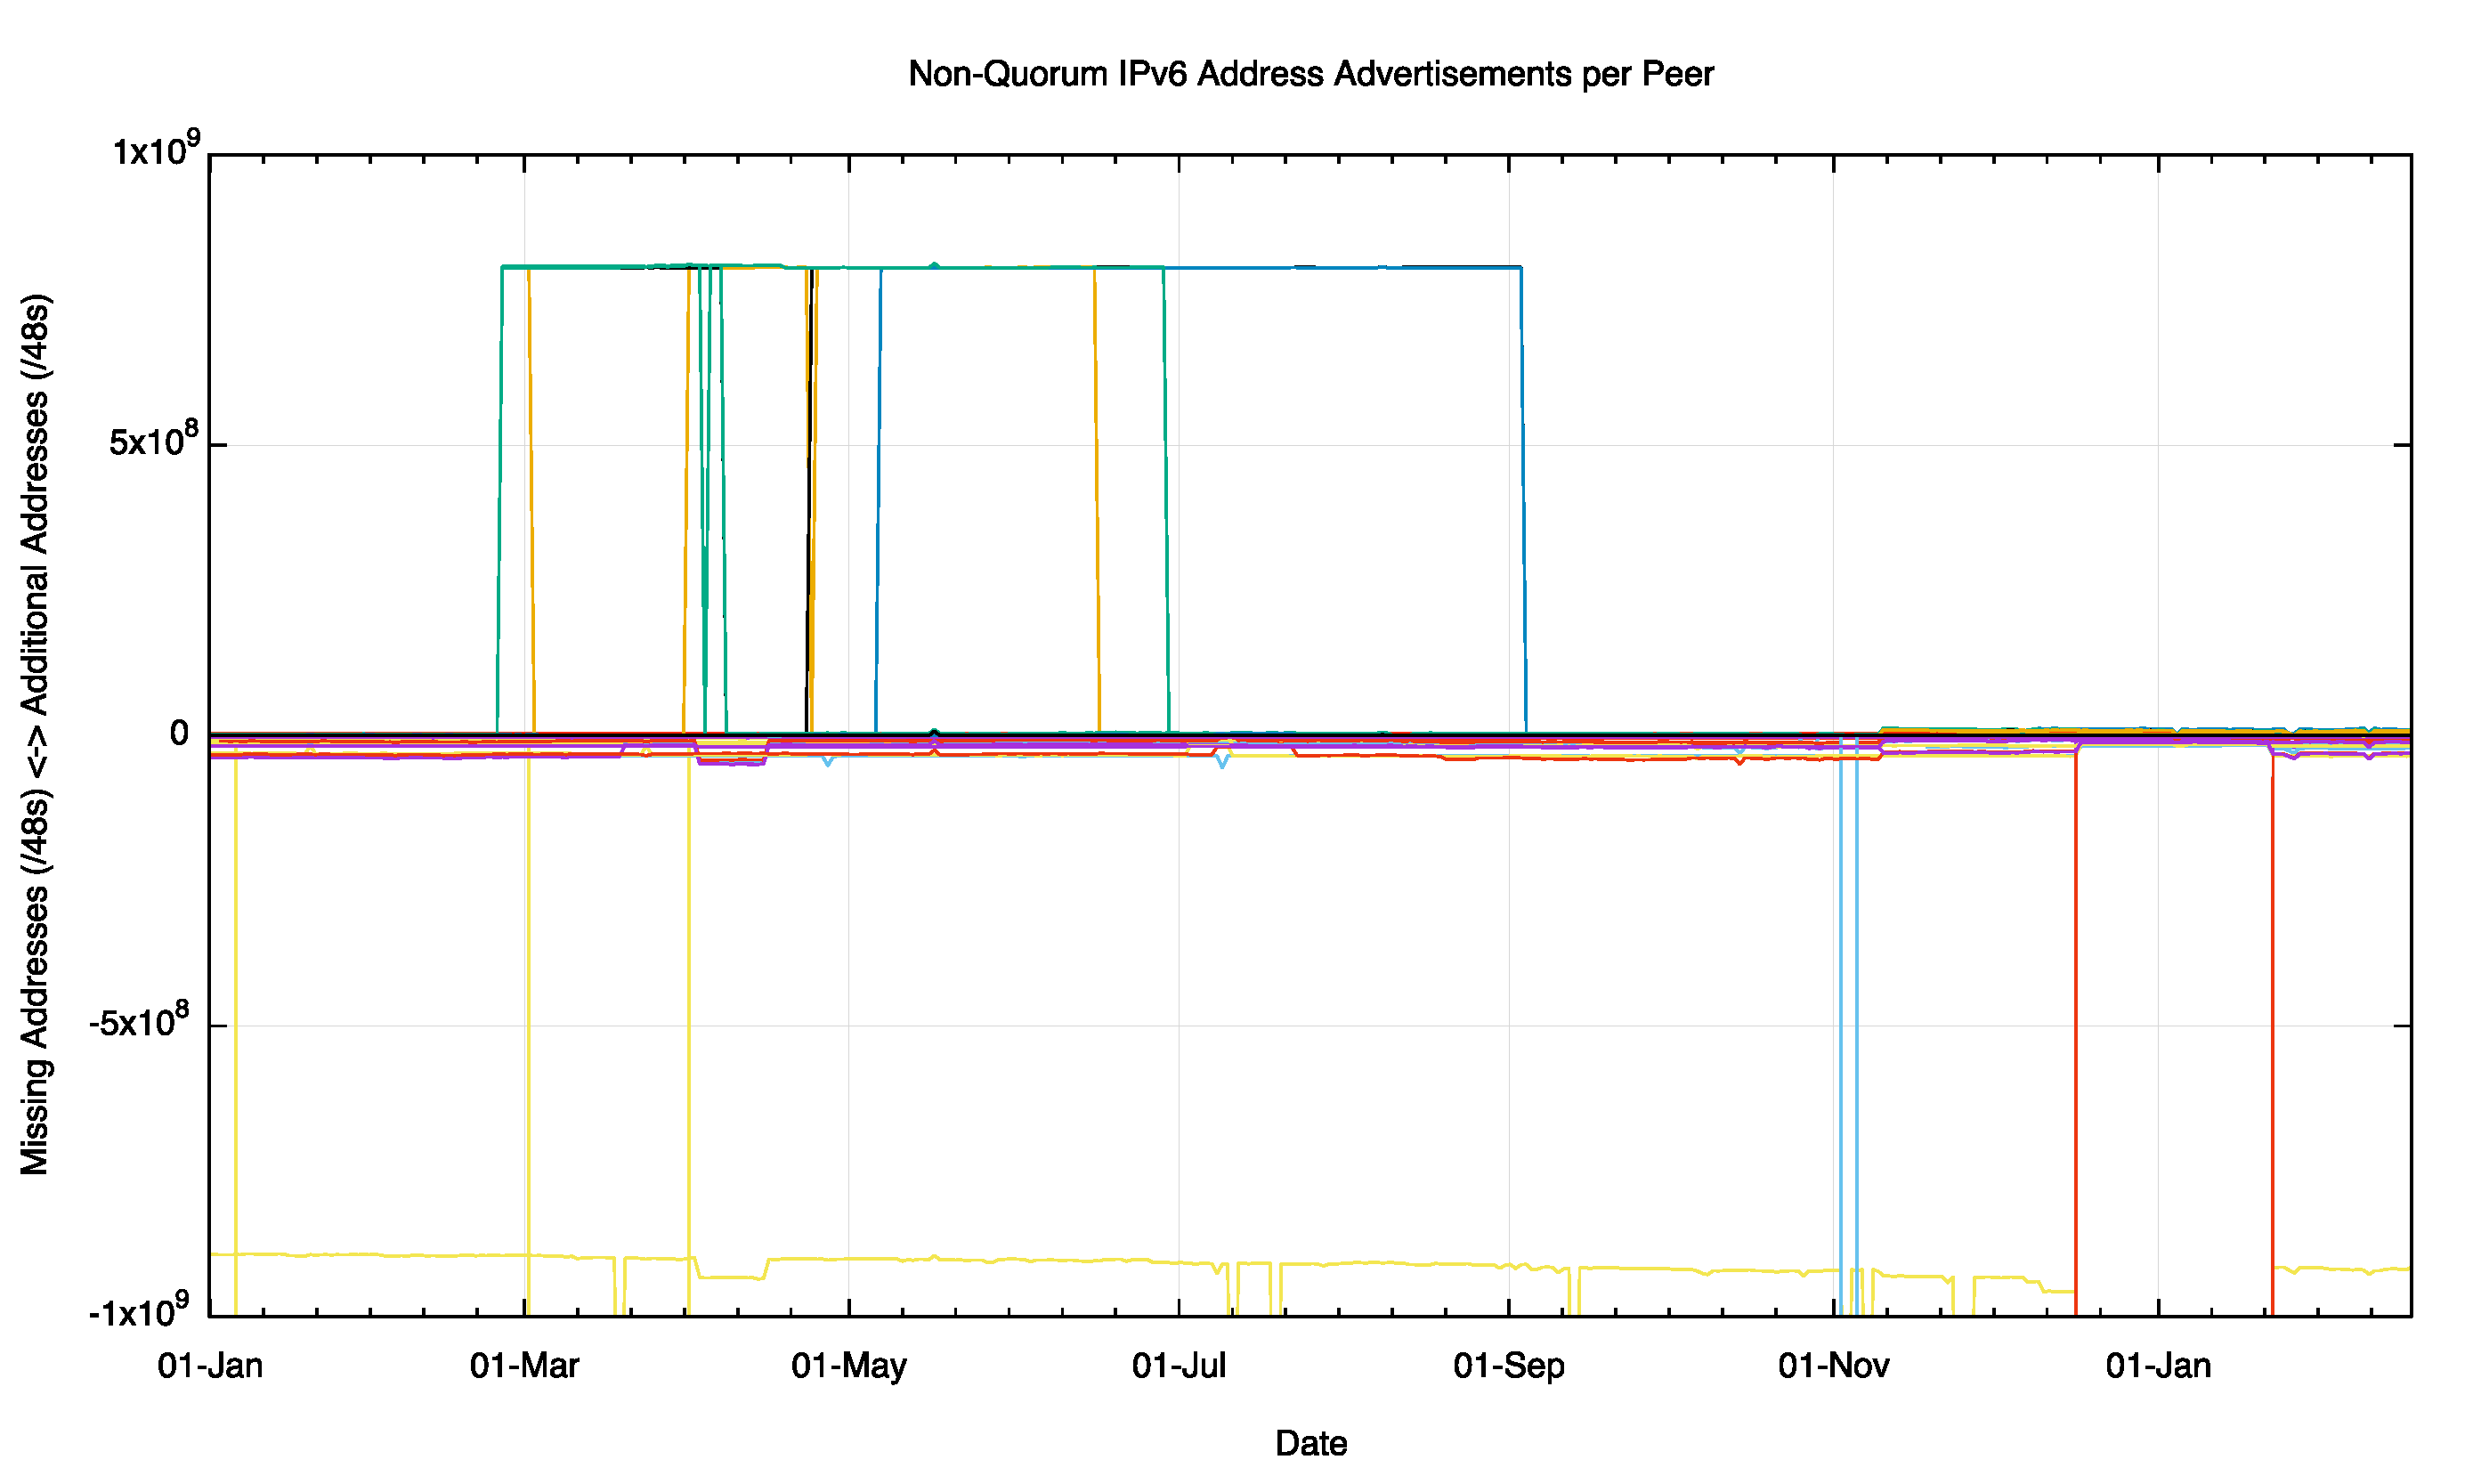 Figure 6 – Non Quorum IPv4 Address Advertisements per peer for 2015